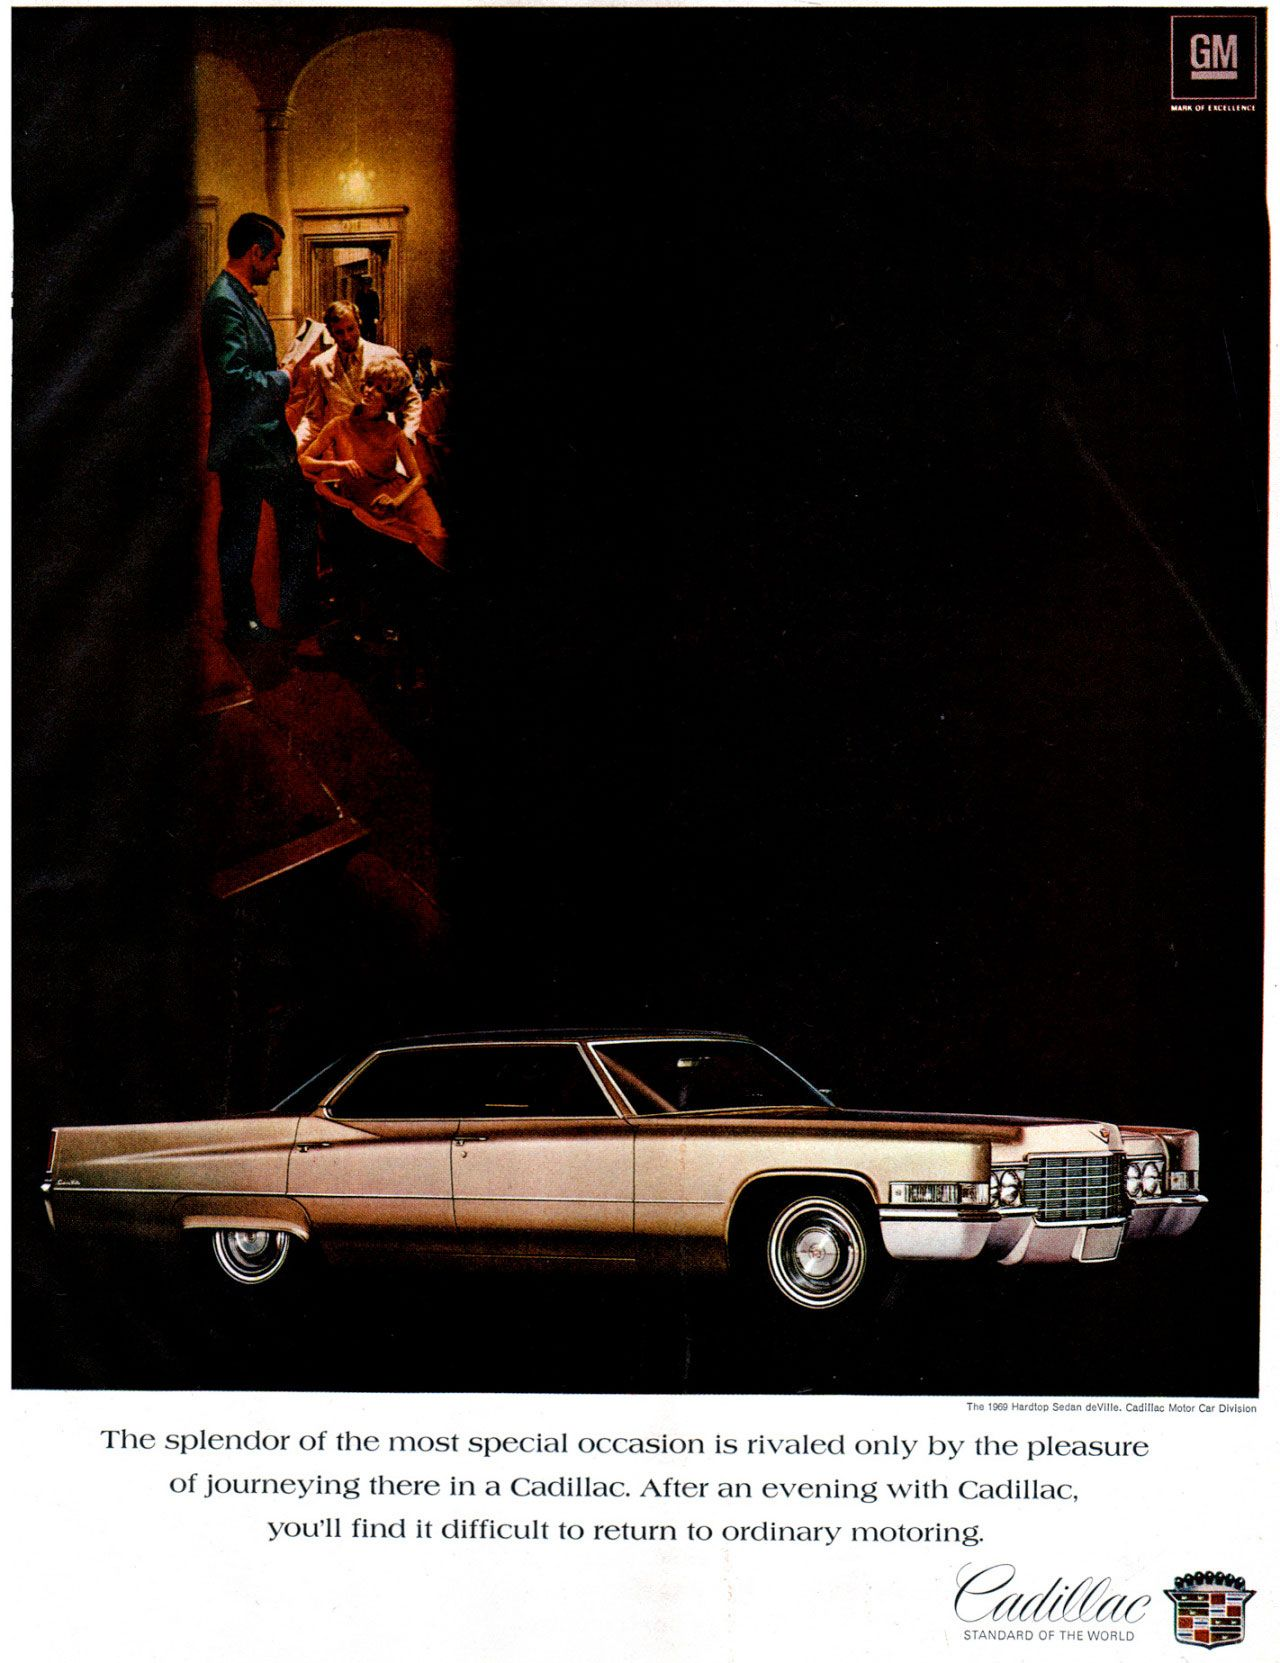 The splendor of the most special occasion is rivaled only by the pleasure of journeying there in a Cadillac. After an evening with Cadillac, you'll find it difficult to return to ordinary motoring. Cadillac. Standard Of The World.